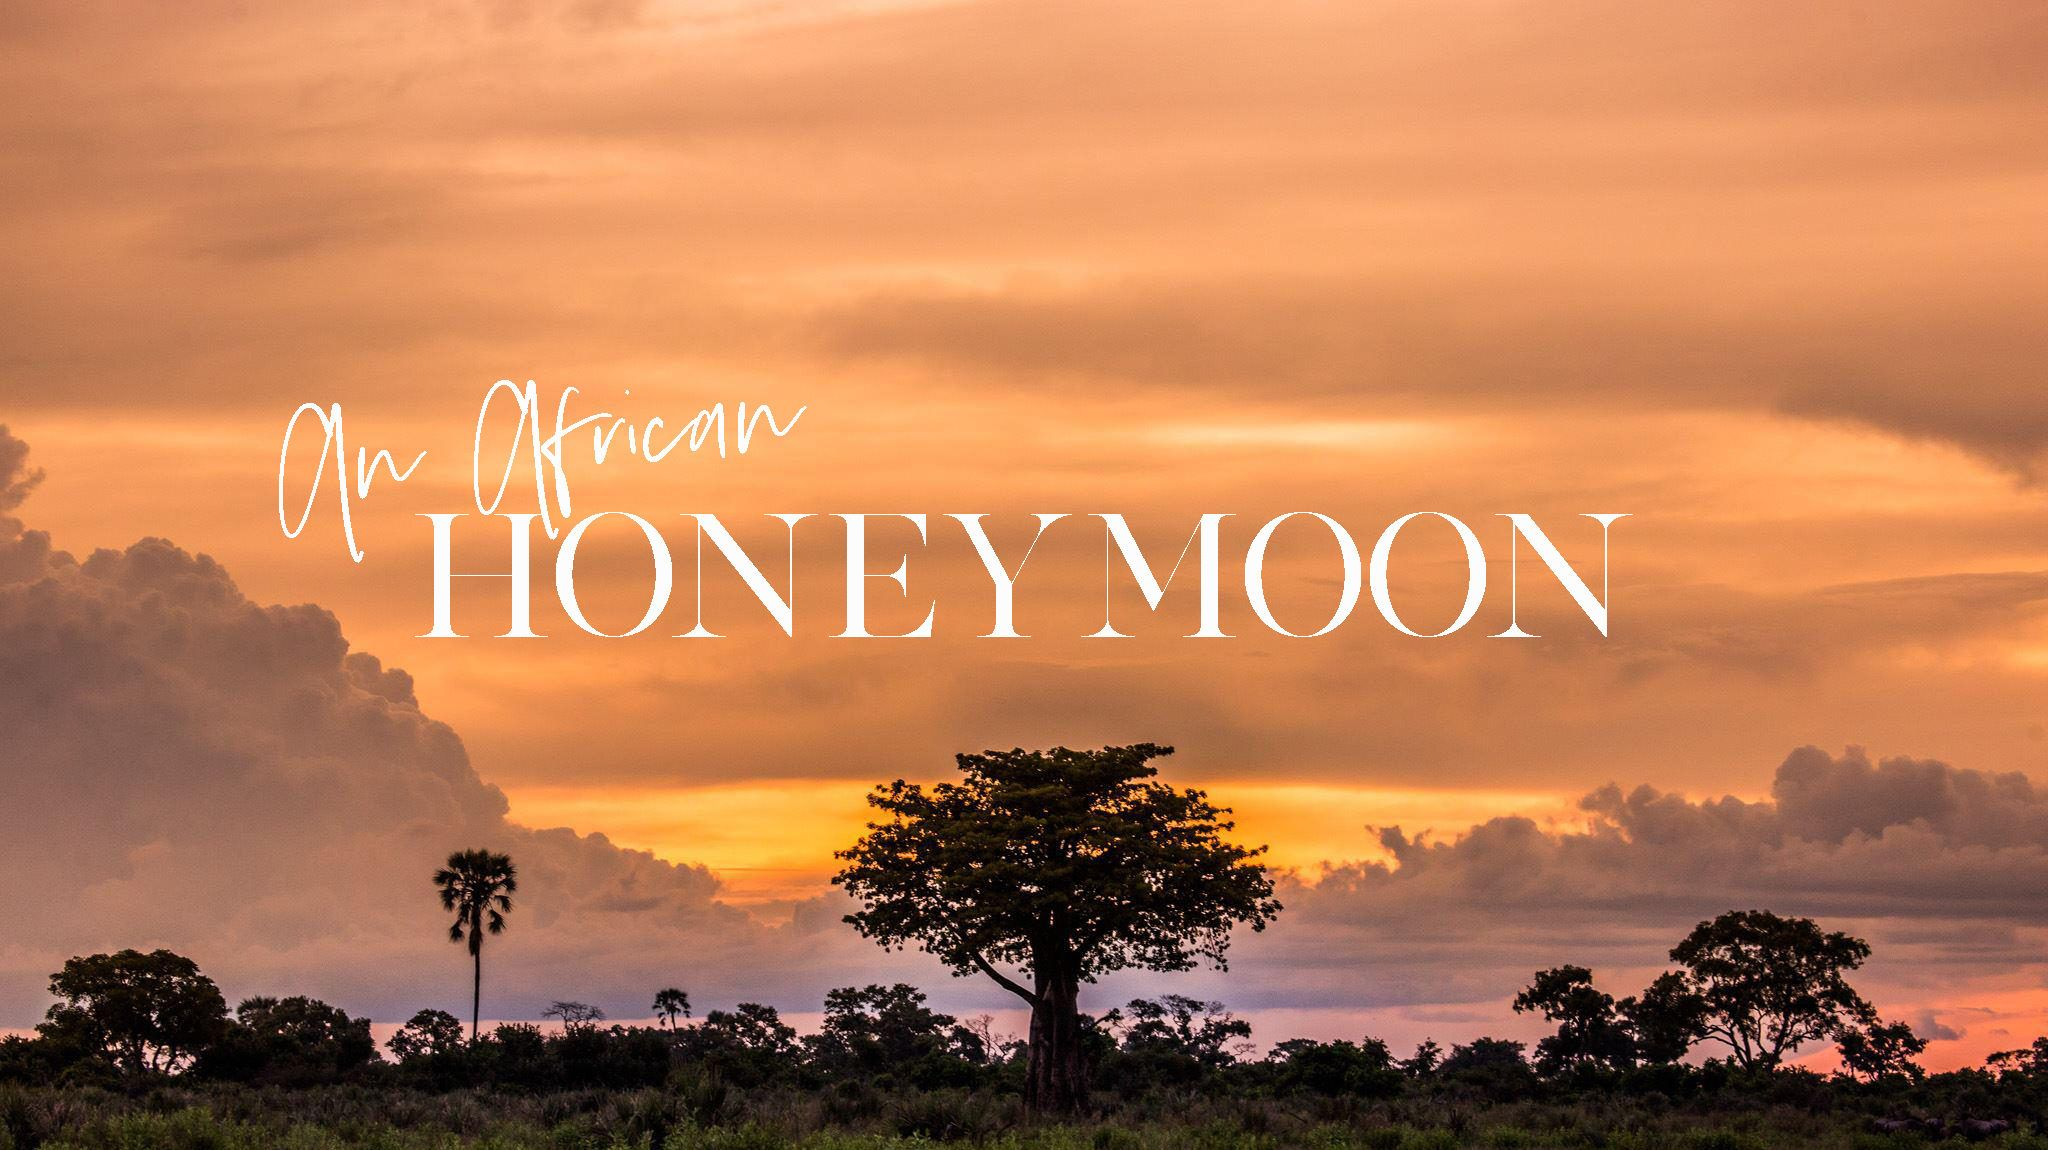 212ac2b323 Africa Honeymoon | WEDDING PLANNING IDEAS | Honeymoon inspiration ...